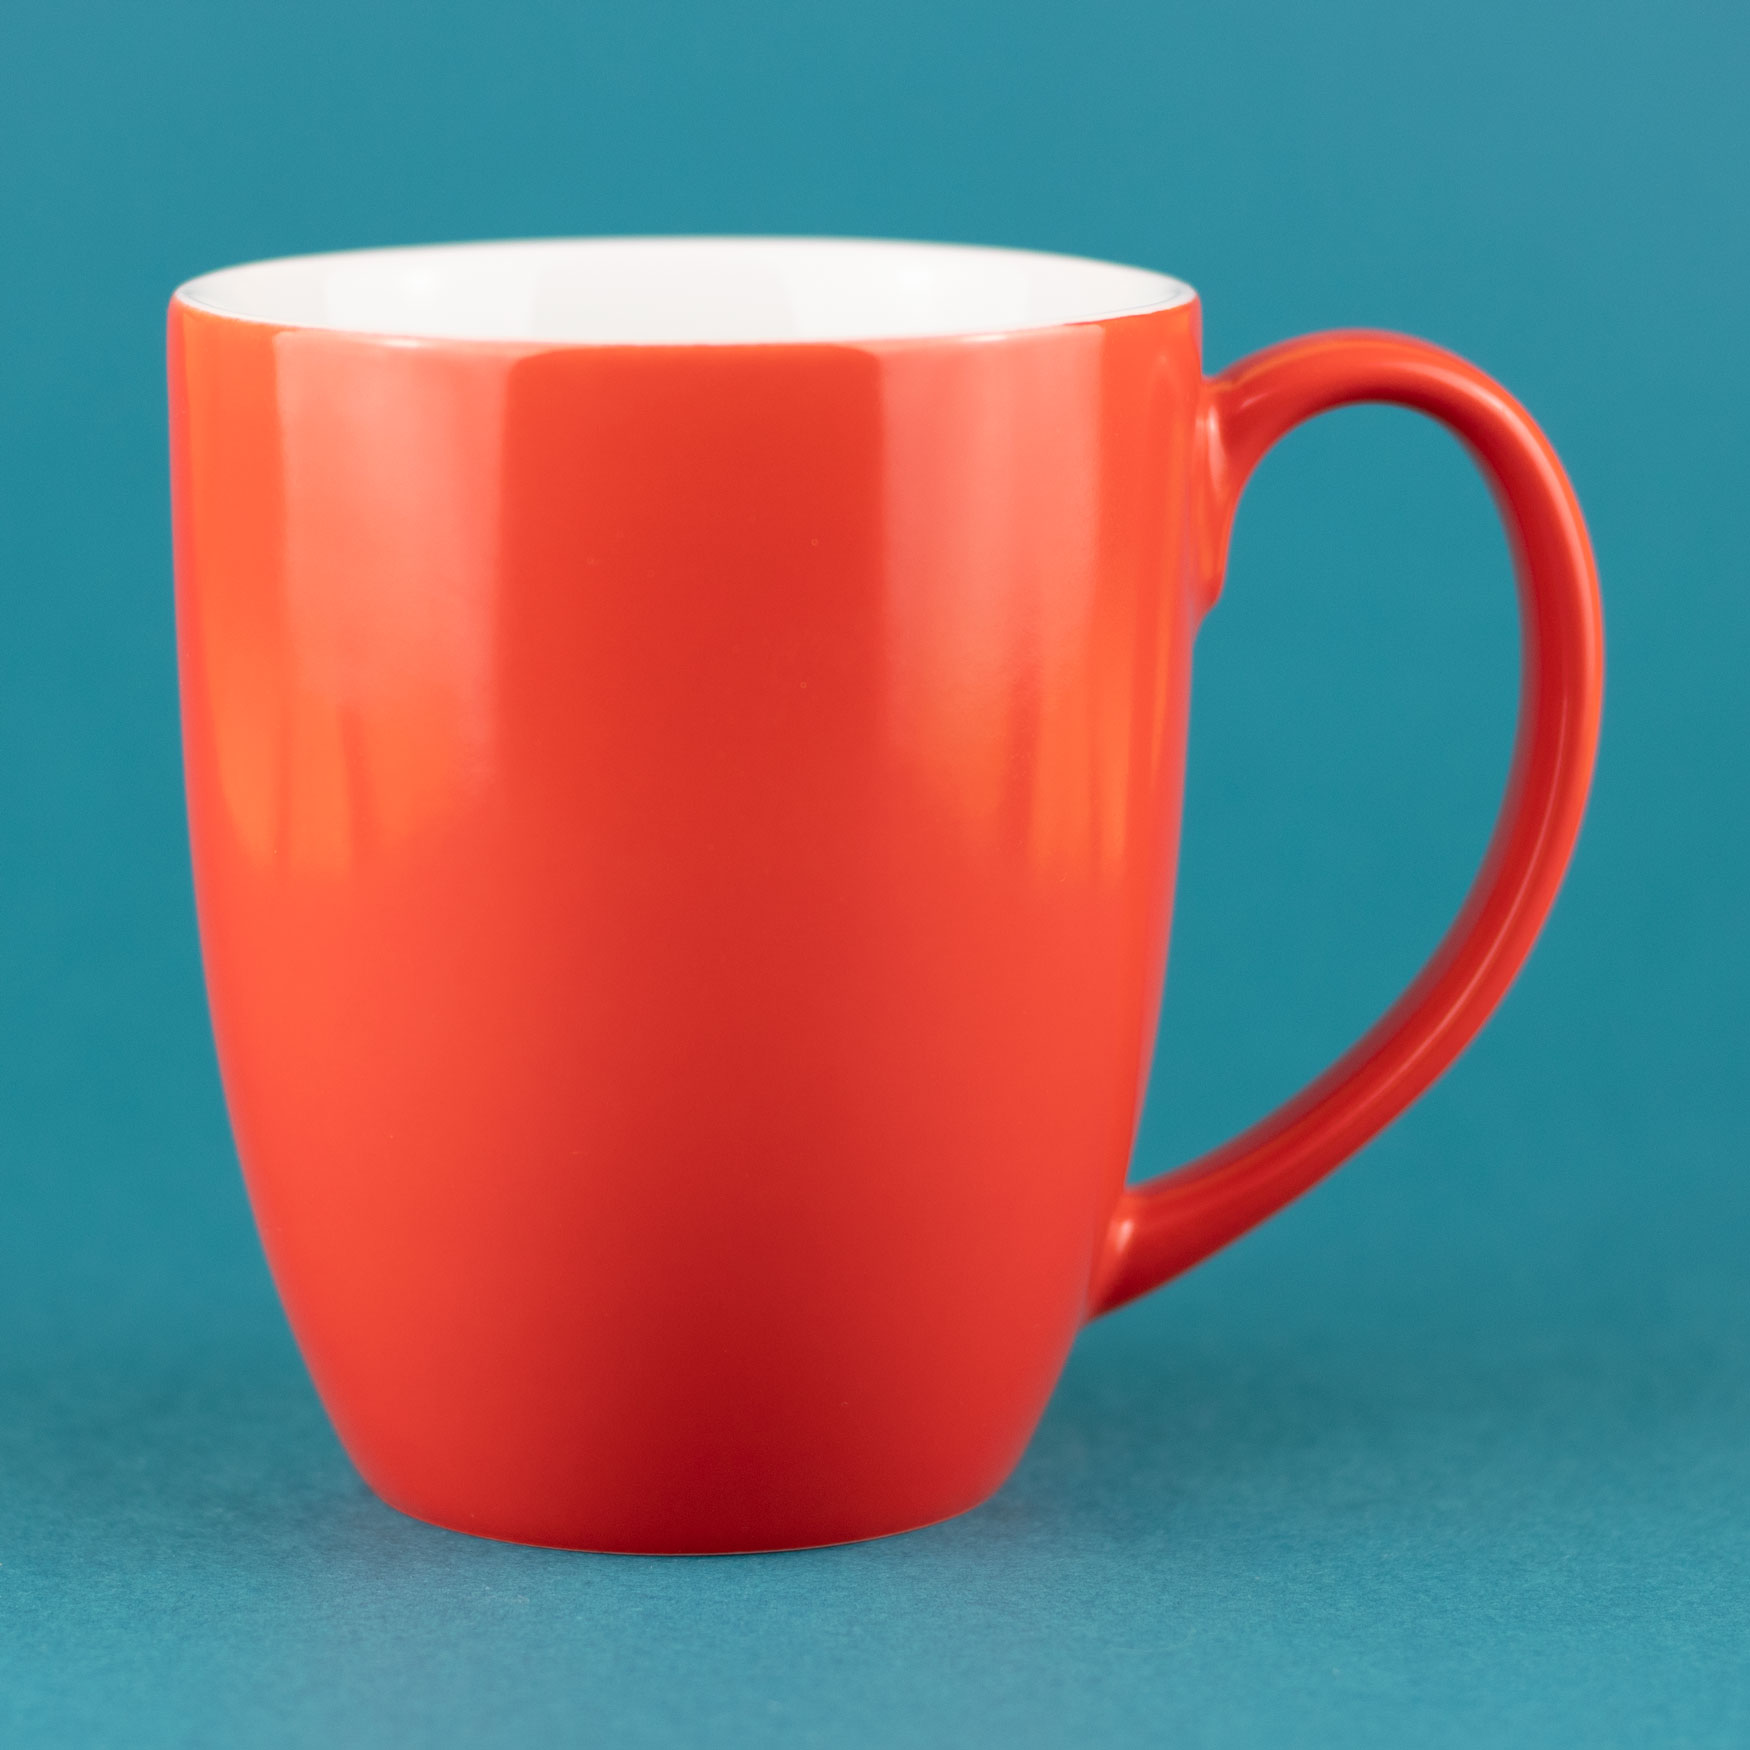 GR371 Bauchige Kaffeetasse Rot 315ml Referenz 1